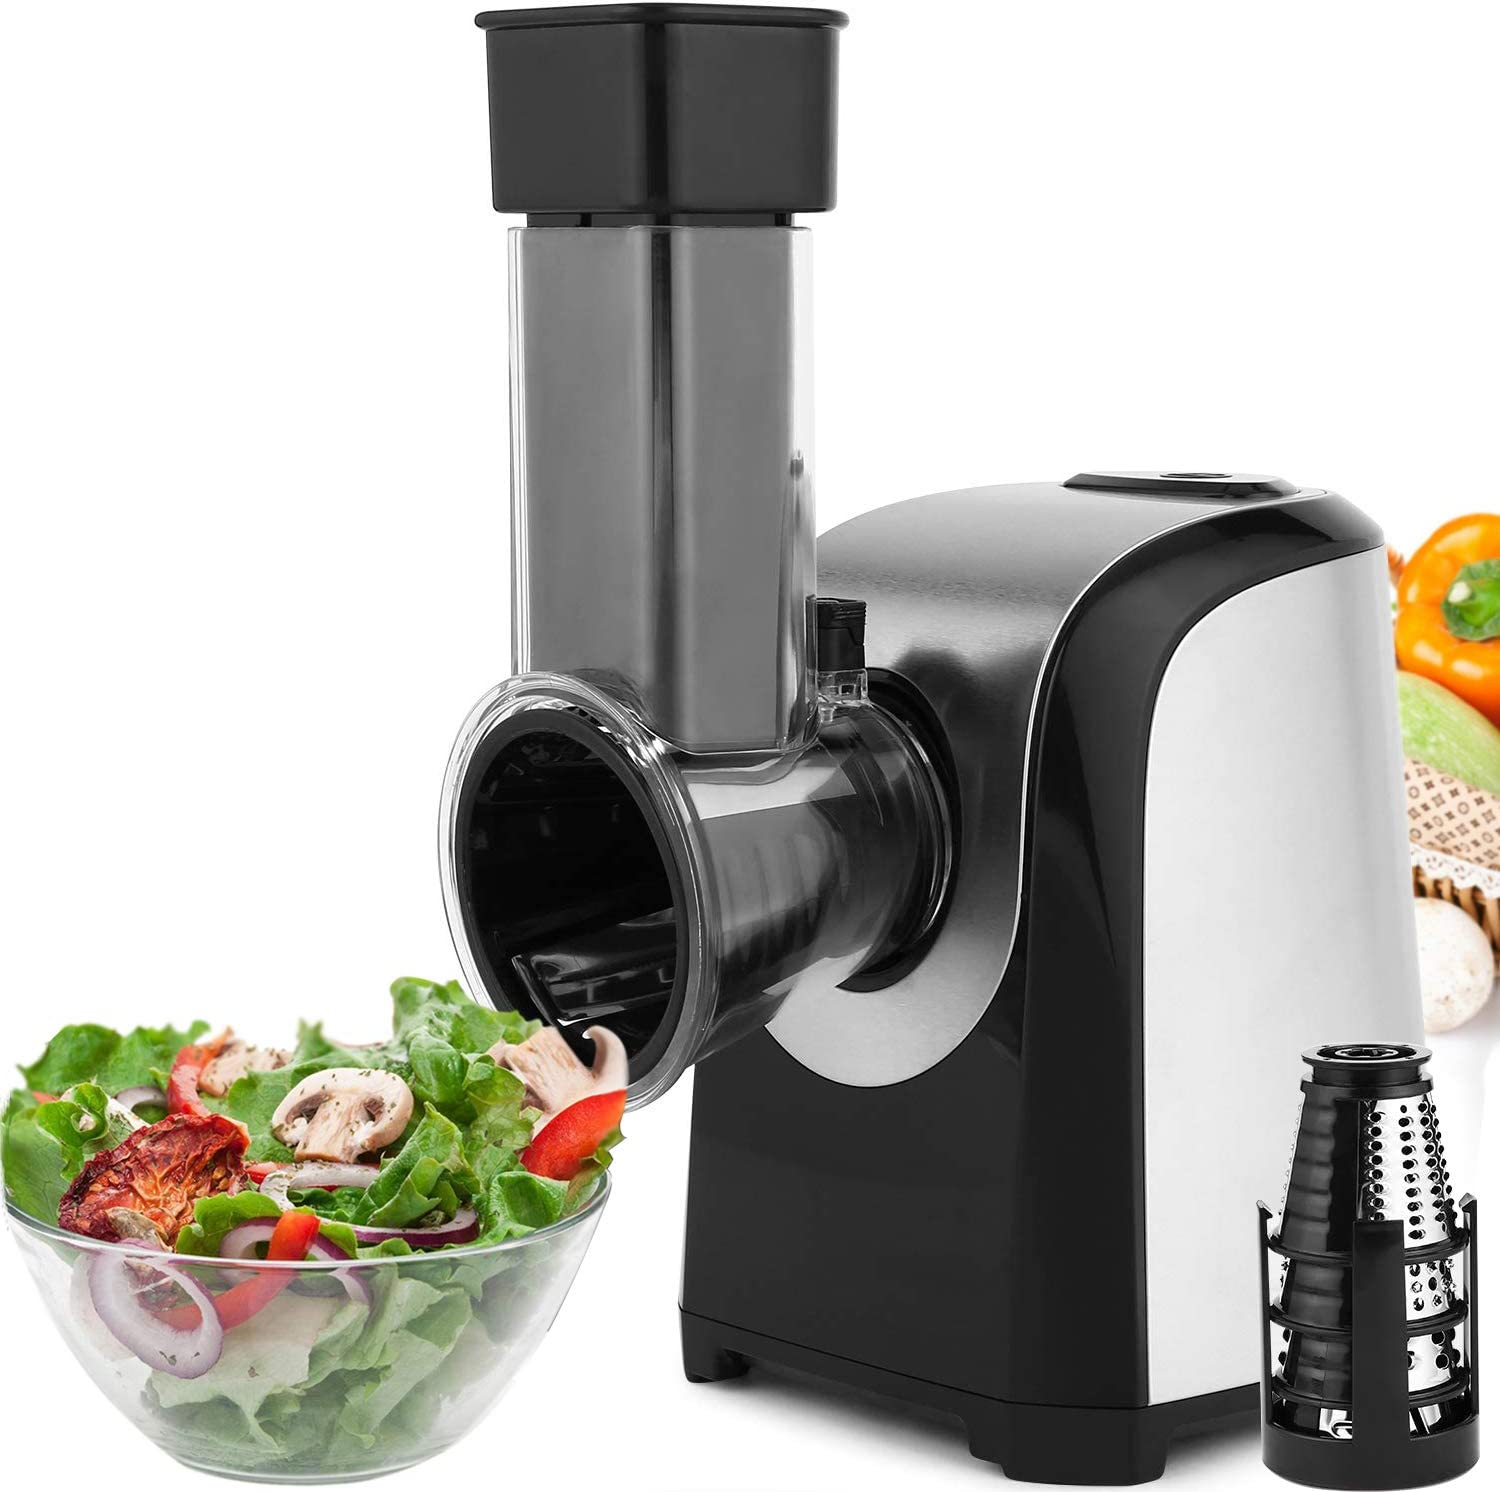 Professional Salad Maker Electric Slicer/Shredder with One-Touch Control